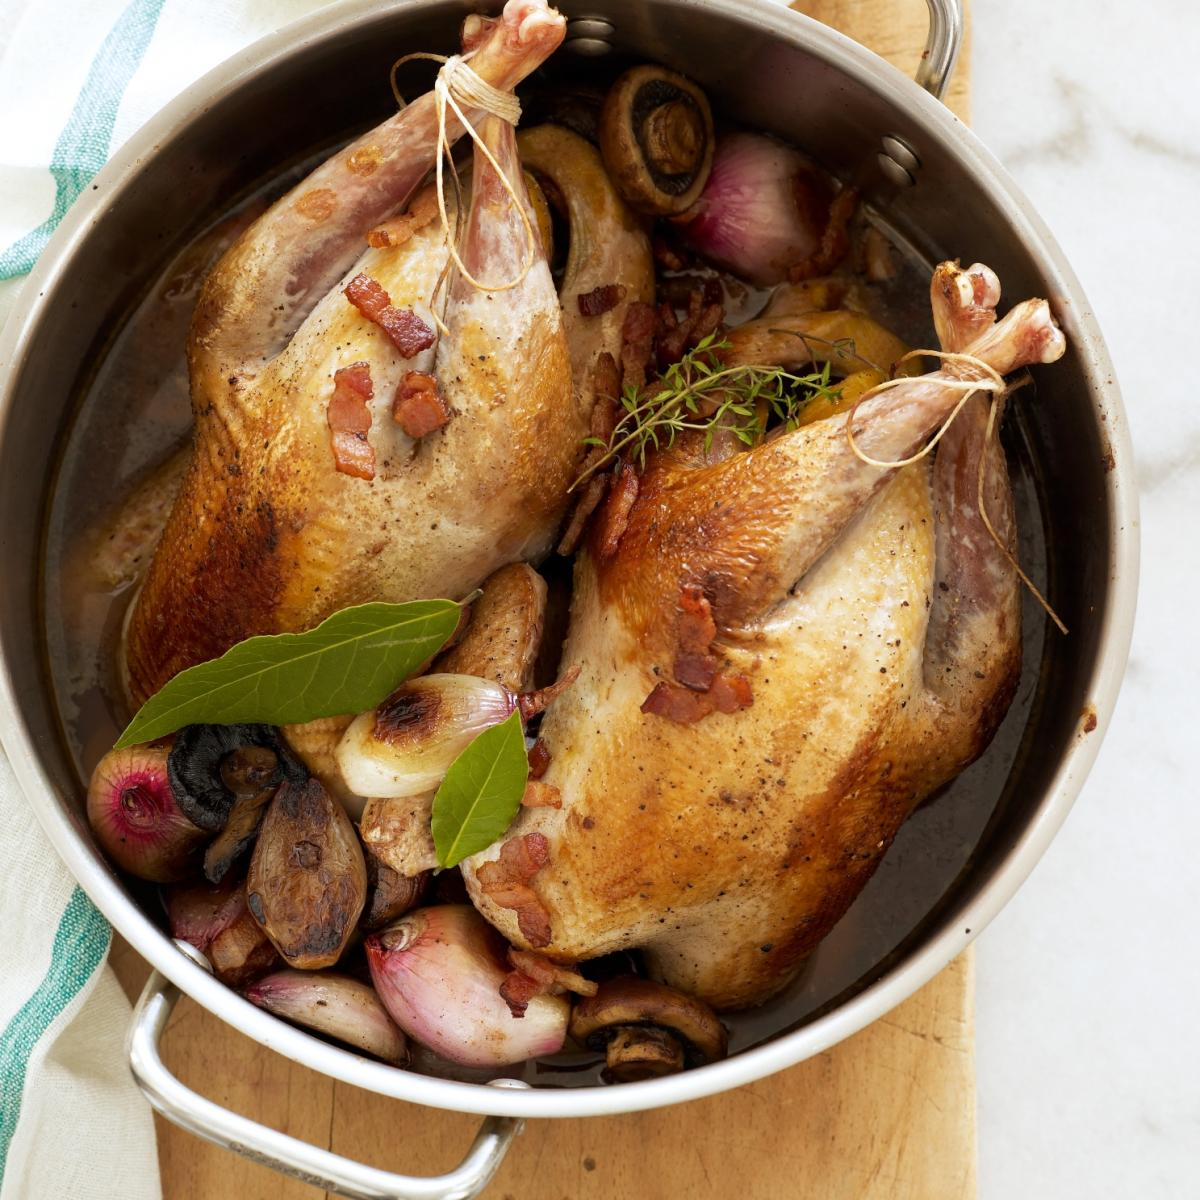 A picture of Delia's Pot-roasted Pheasants in Madeira recipe